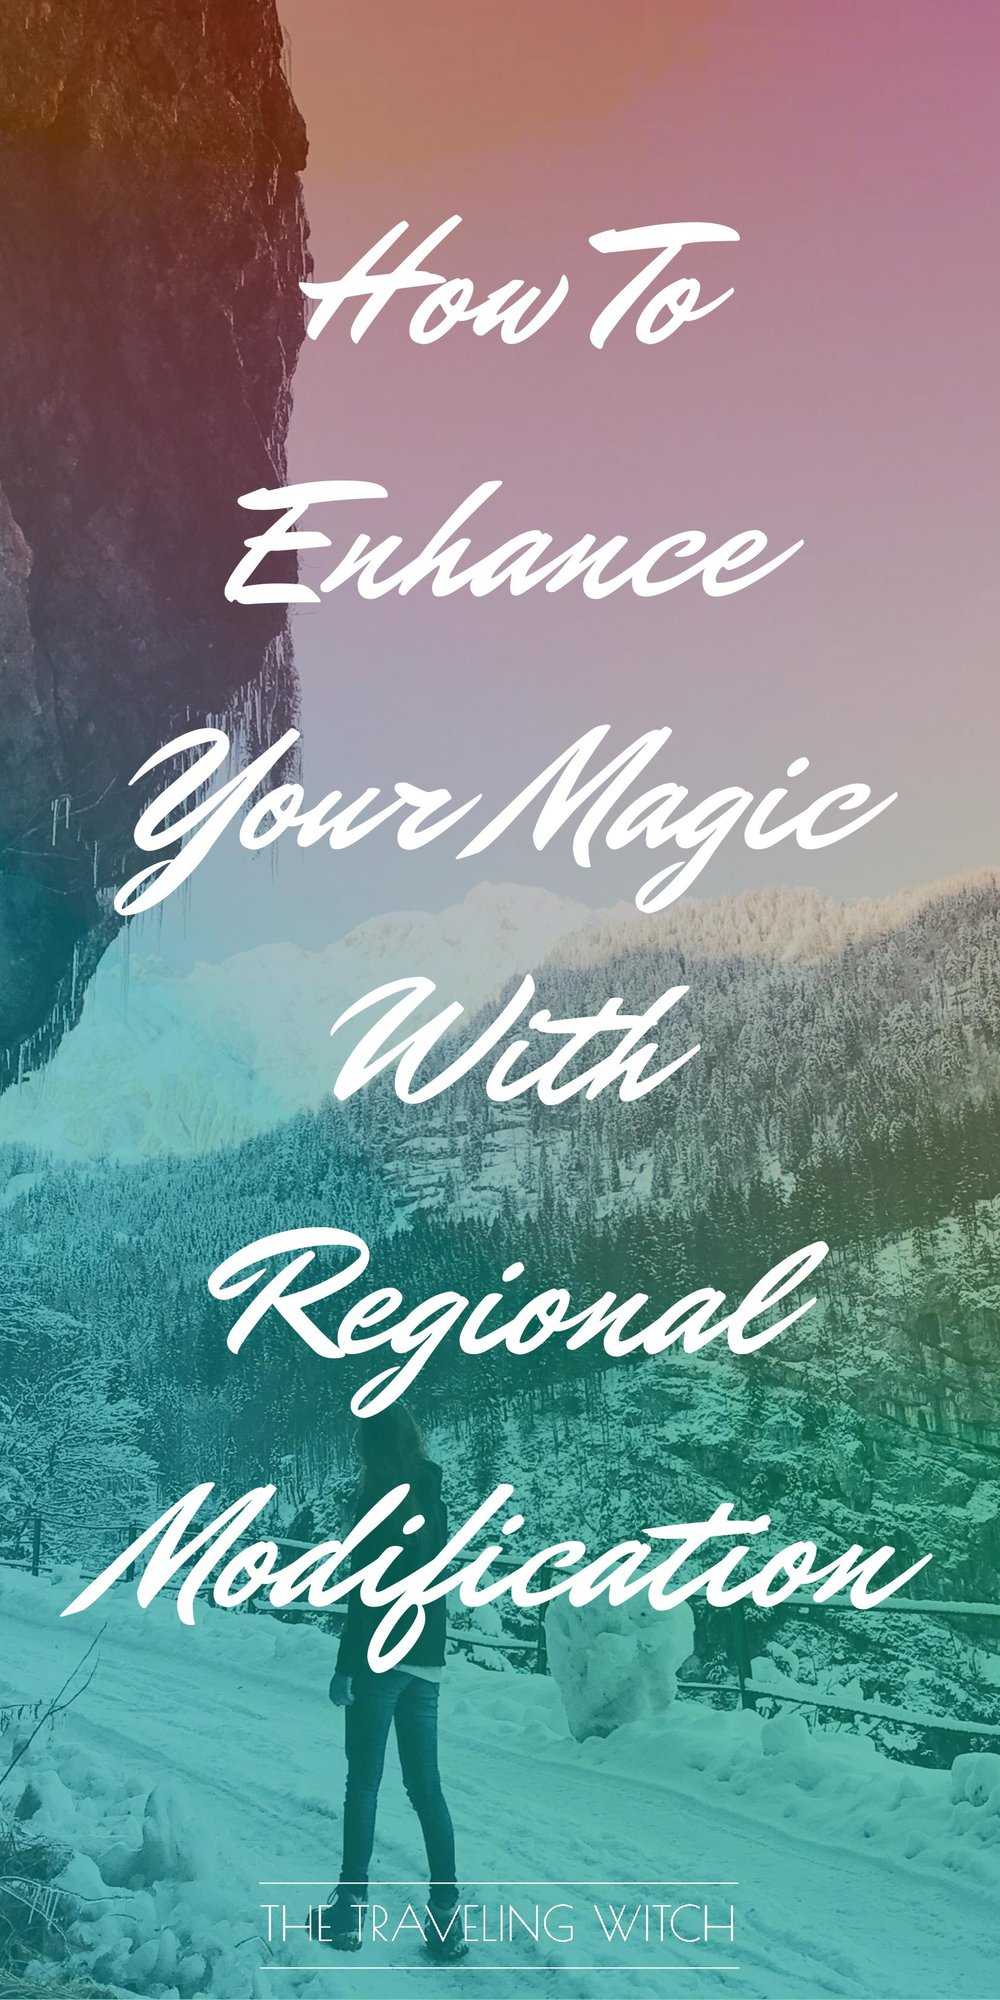 How To Enhance Your Magic With Regional Modifications // Witchcraft // The Traveling Witch